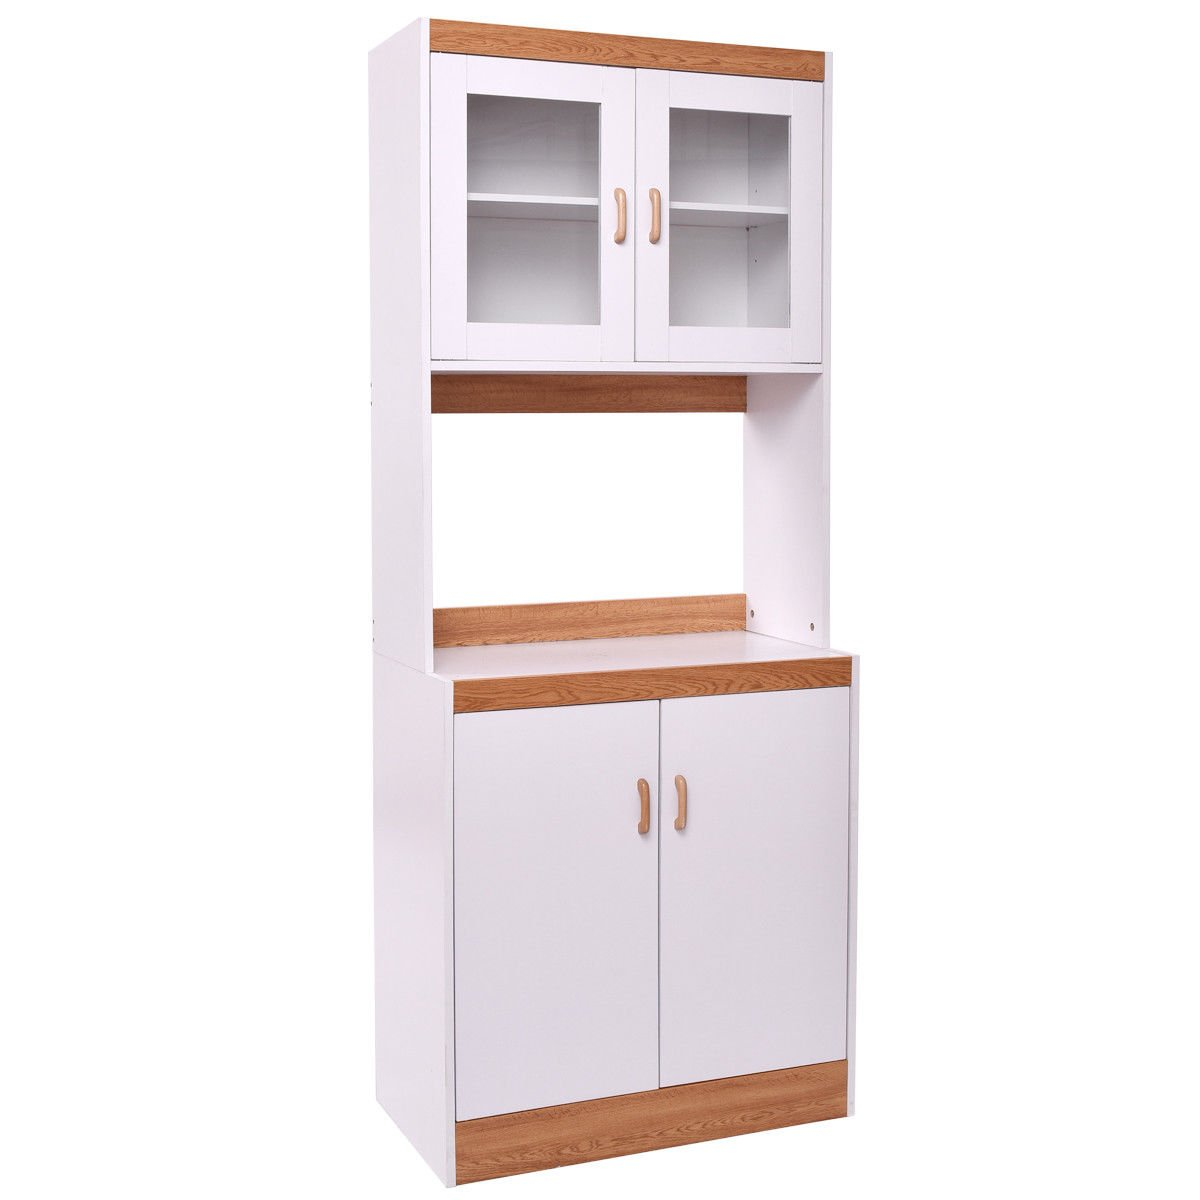 Giantex Microwave Cabinet Counter Kitchen Pantry Cupboard Storage Cabinet Shelves White (72.1'' Height)